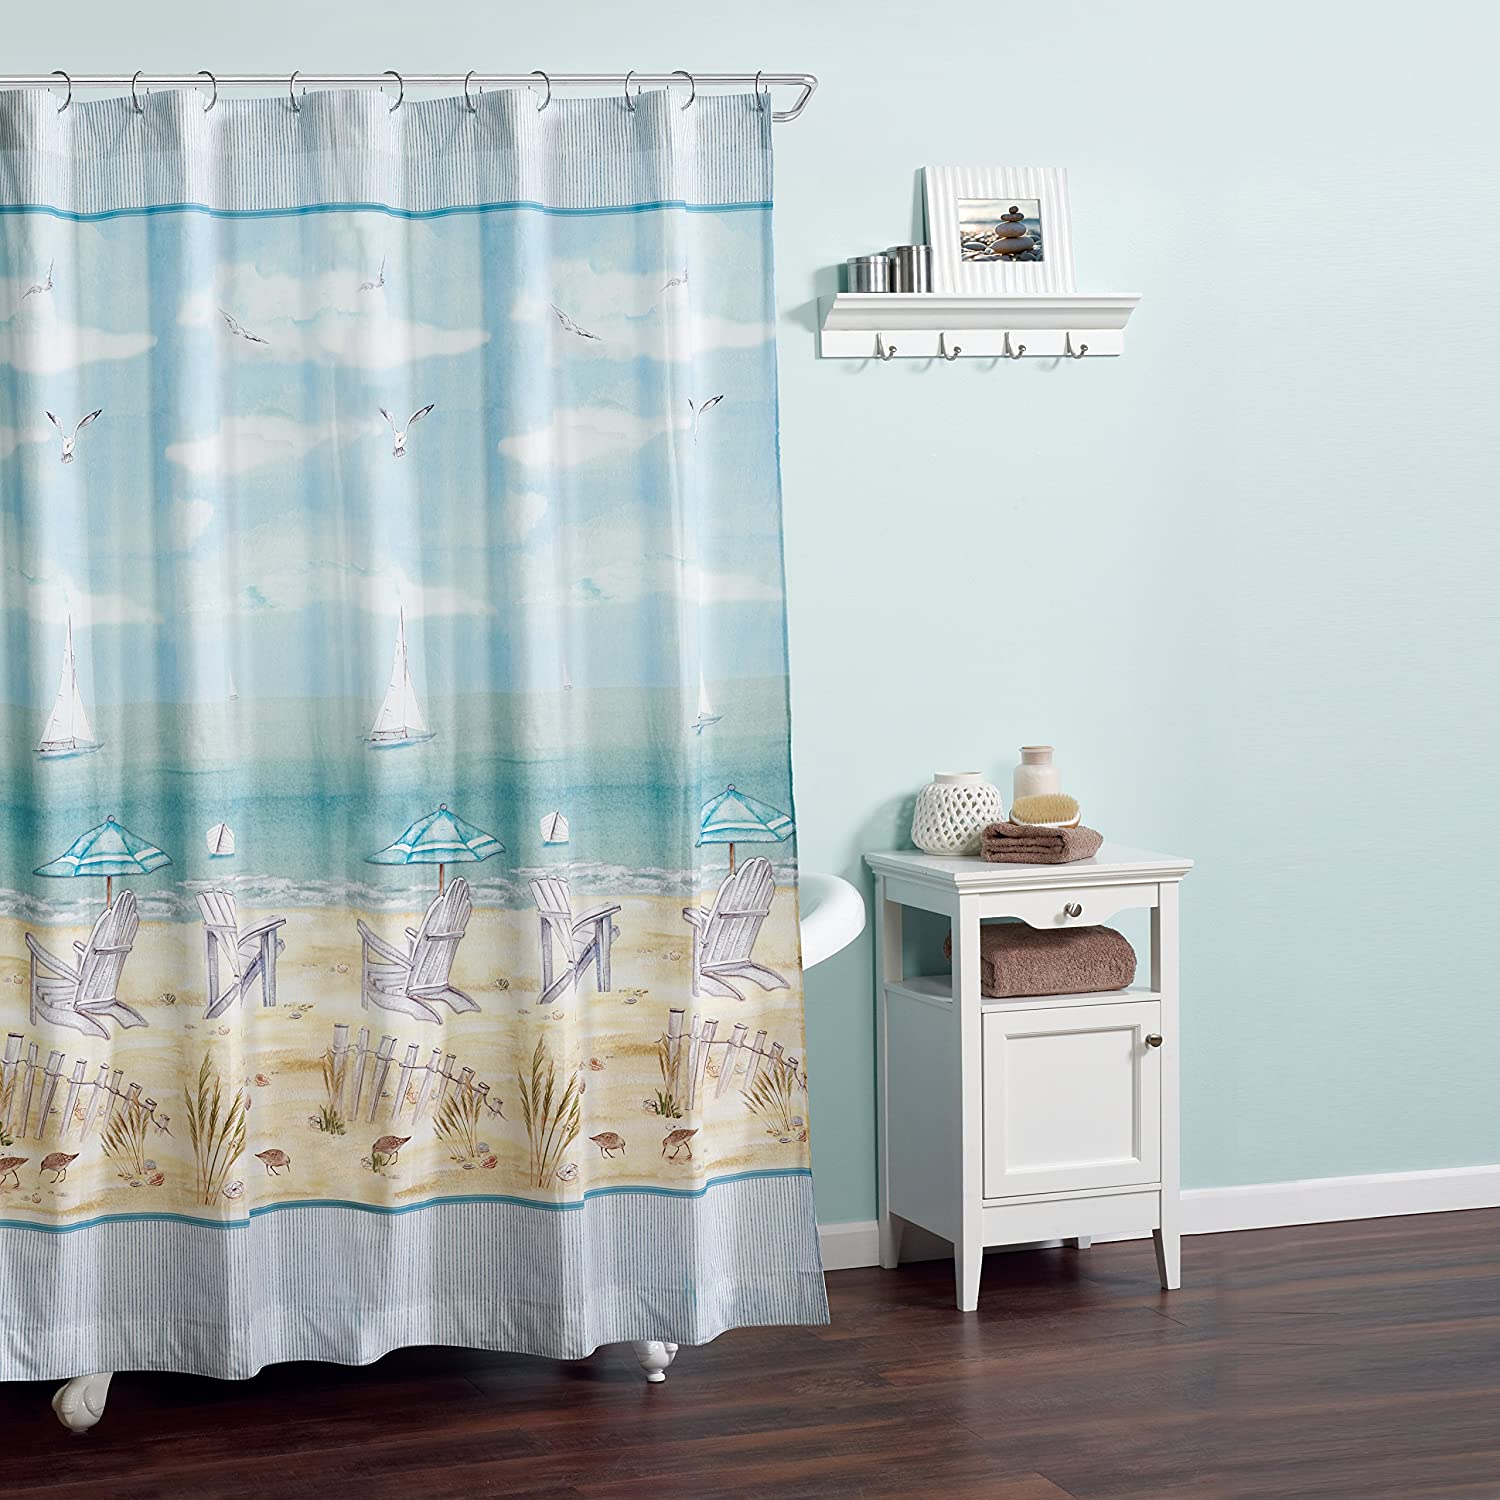 Amazon.com: Zenna Home, India Ink Seaside Serenity Shower Curtain ...